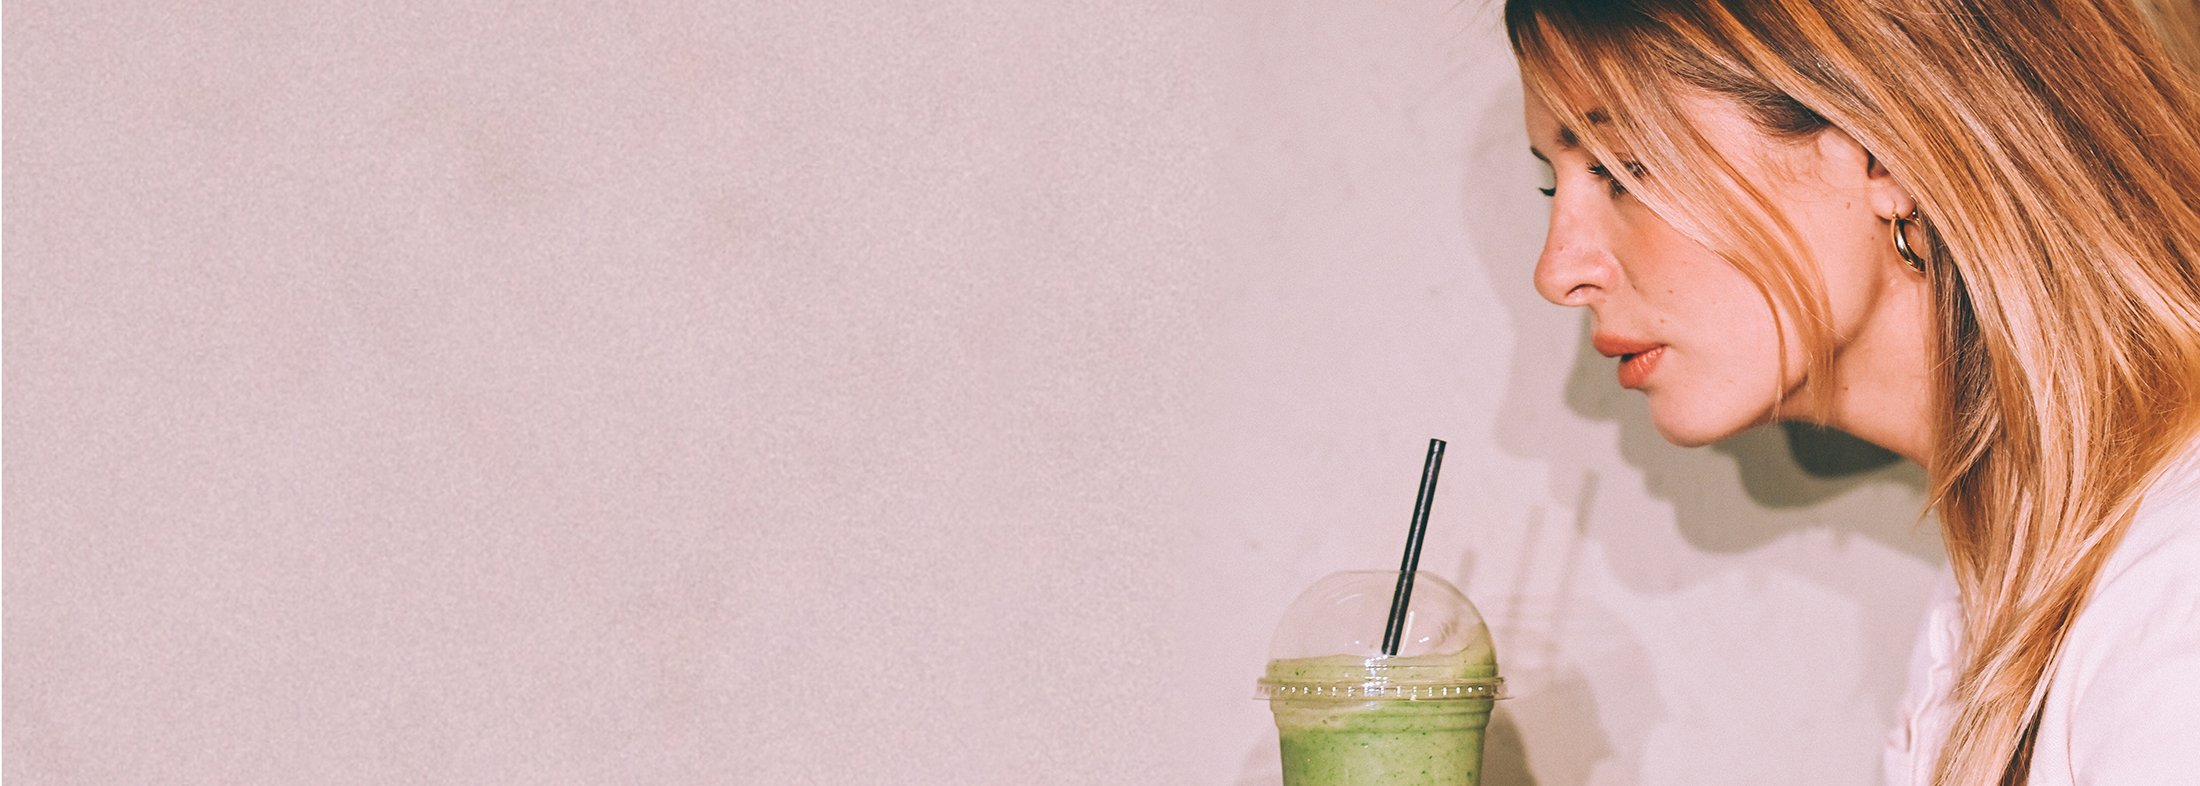 Woman drinking healthy smoothie to combat alopecia hair loss